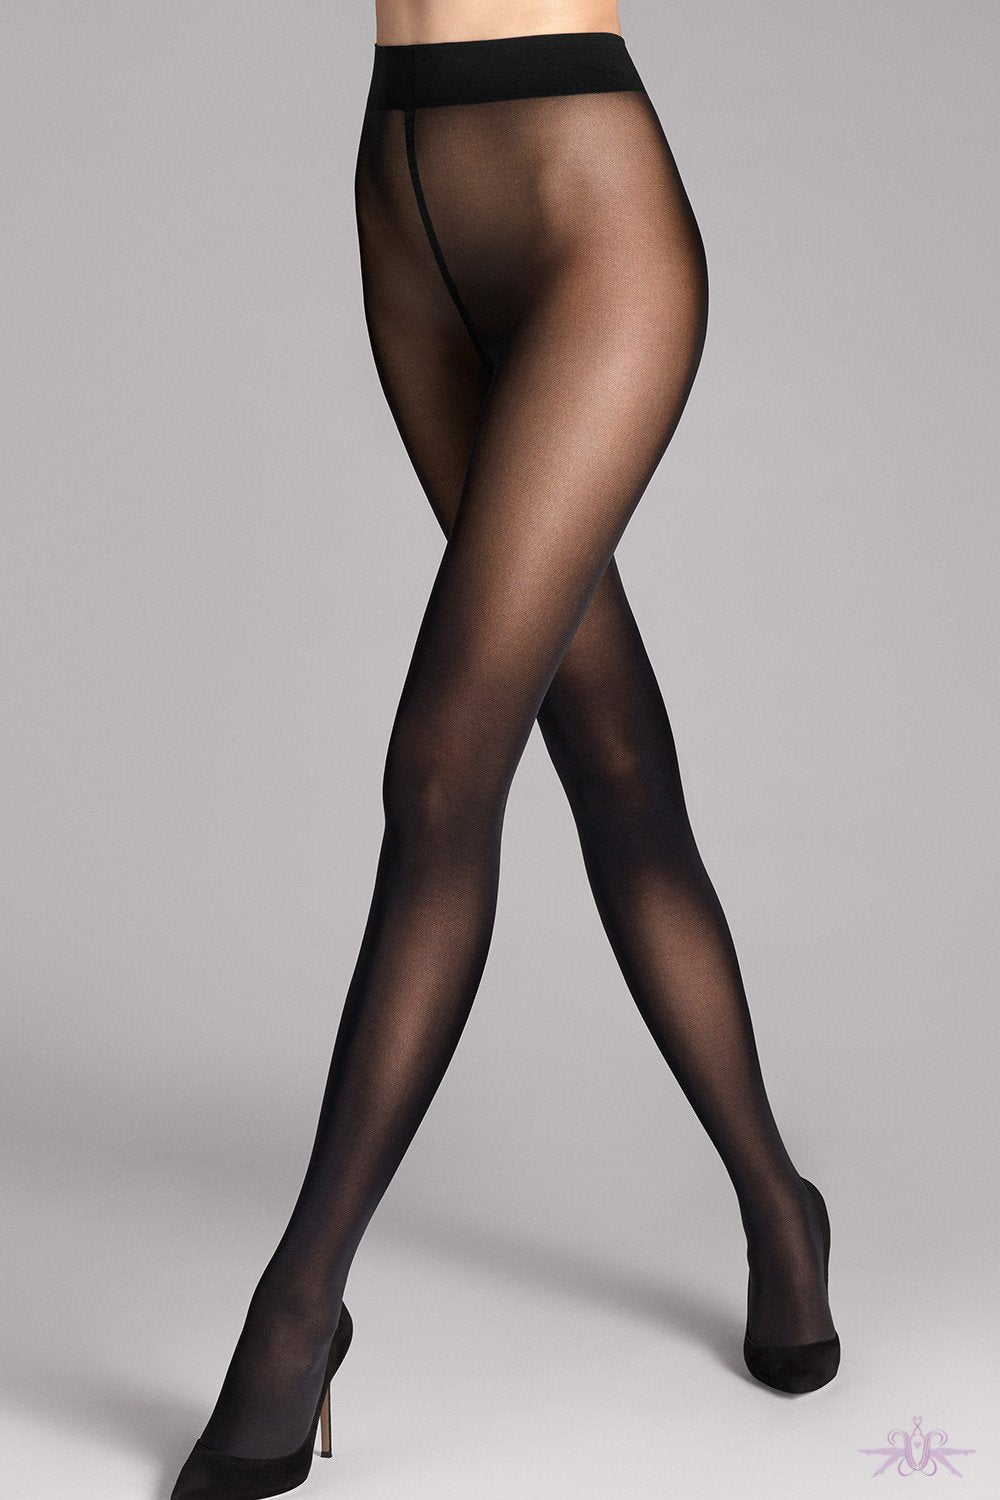 Wolford Pure 50 Tights - The Hosiery Box